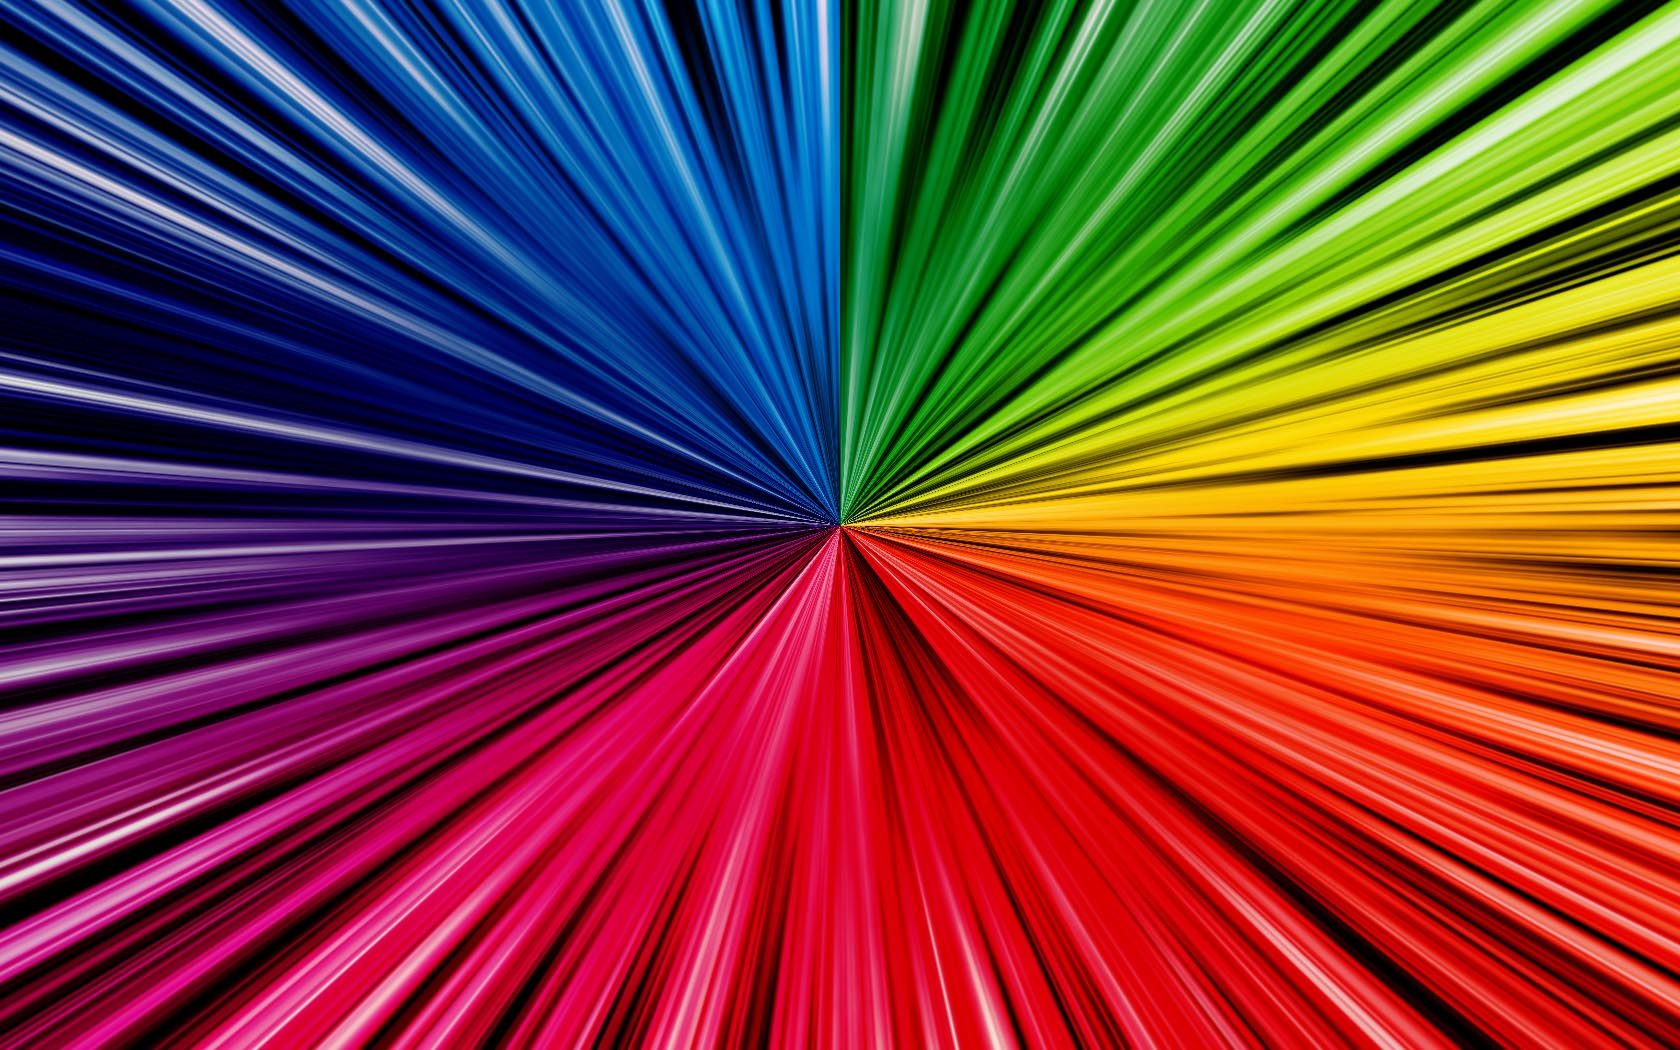 Color of art definition - Attractive Color Definition In Art 1 Zoom_into_colour_wallpaper_by_puffthemagicdragon92 Jpg